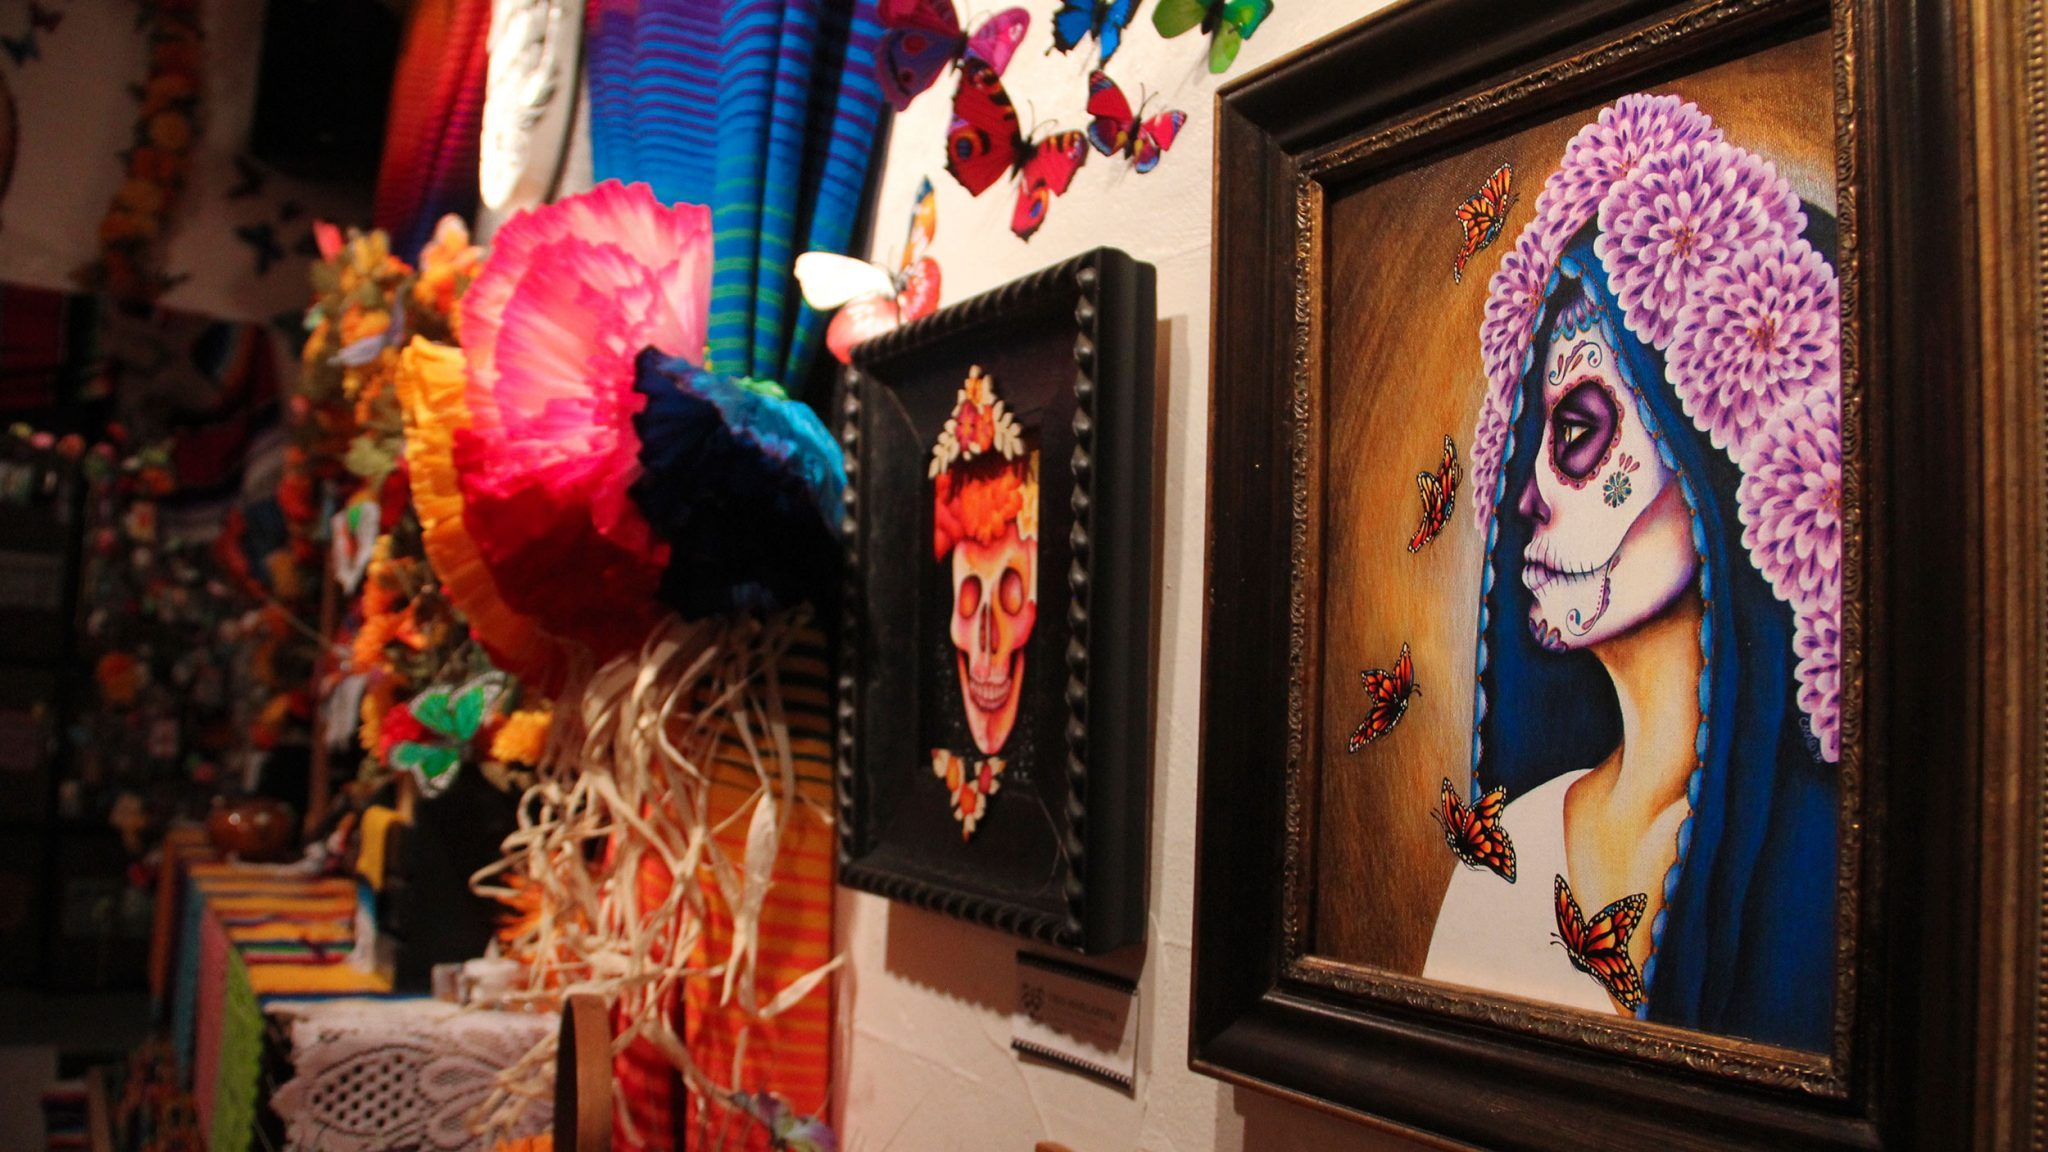 Elissa Saldana/Courier Attendees view calaca masks by one of the Artists at the 21st Annual Dia De Los Muertos event hosted by the Zona Rosa Caffe.